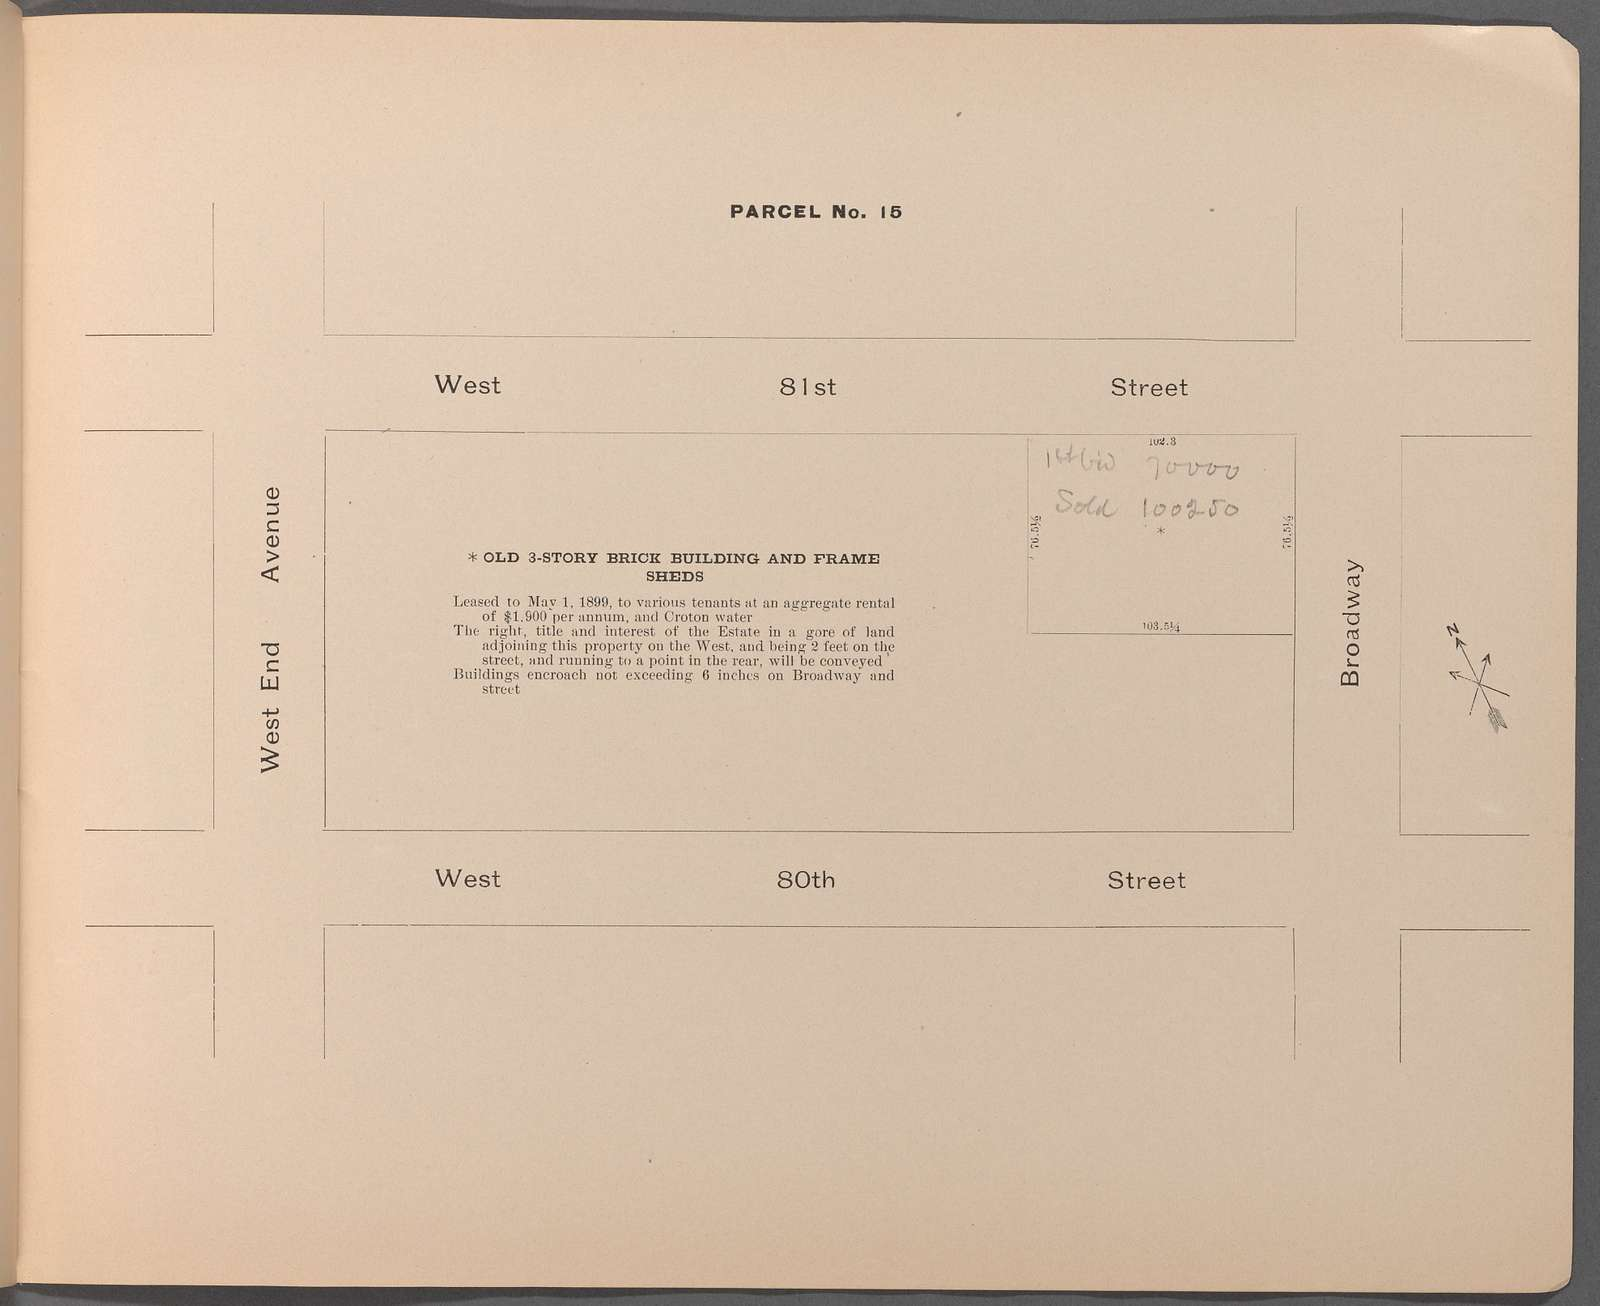 Second Executor's Sale under direction of the Supreme Court. Estate of Amos R. Eno